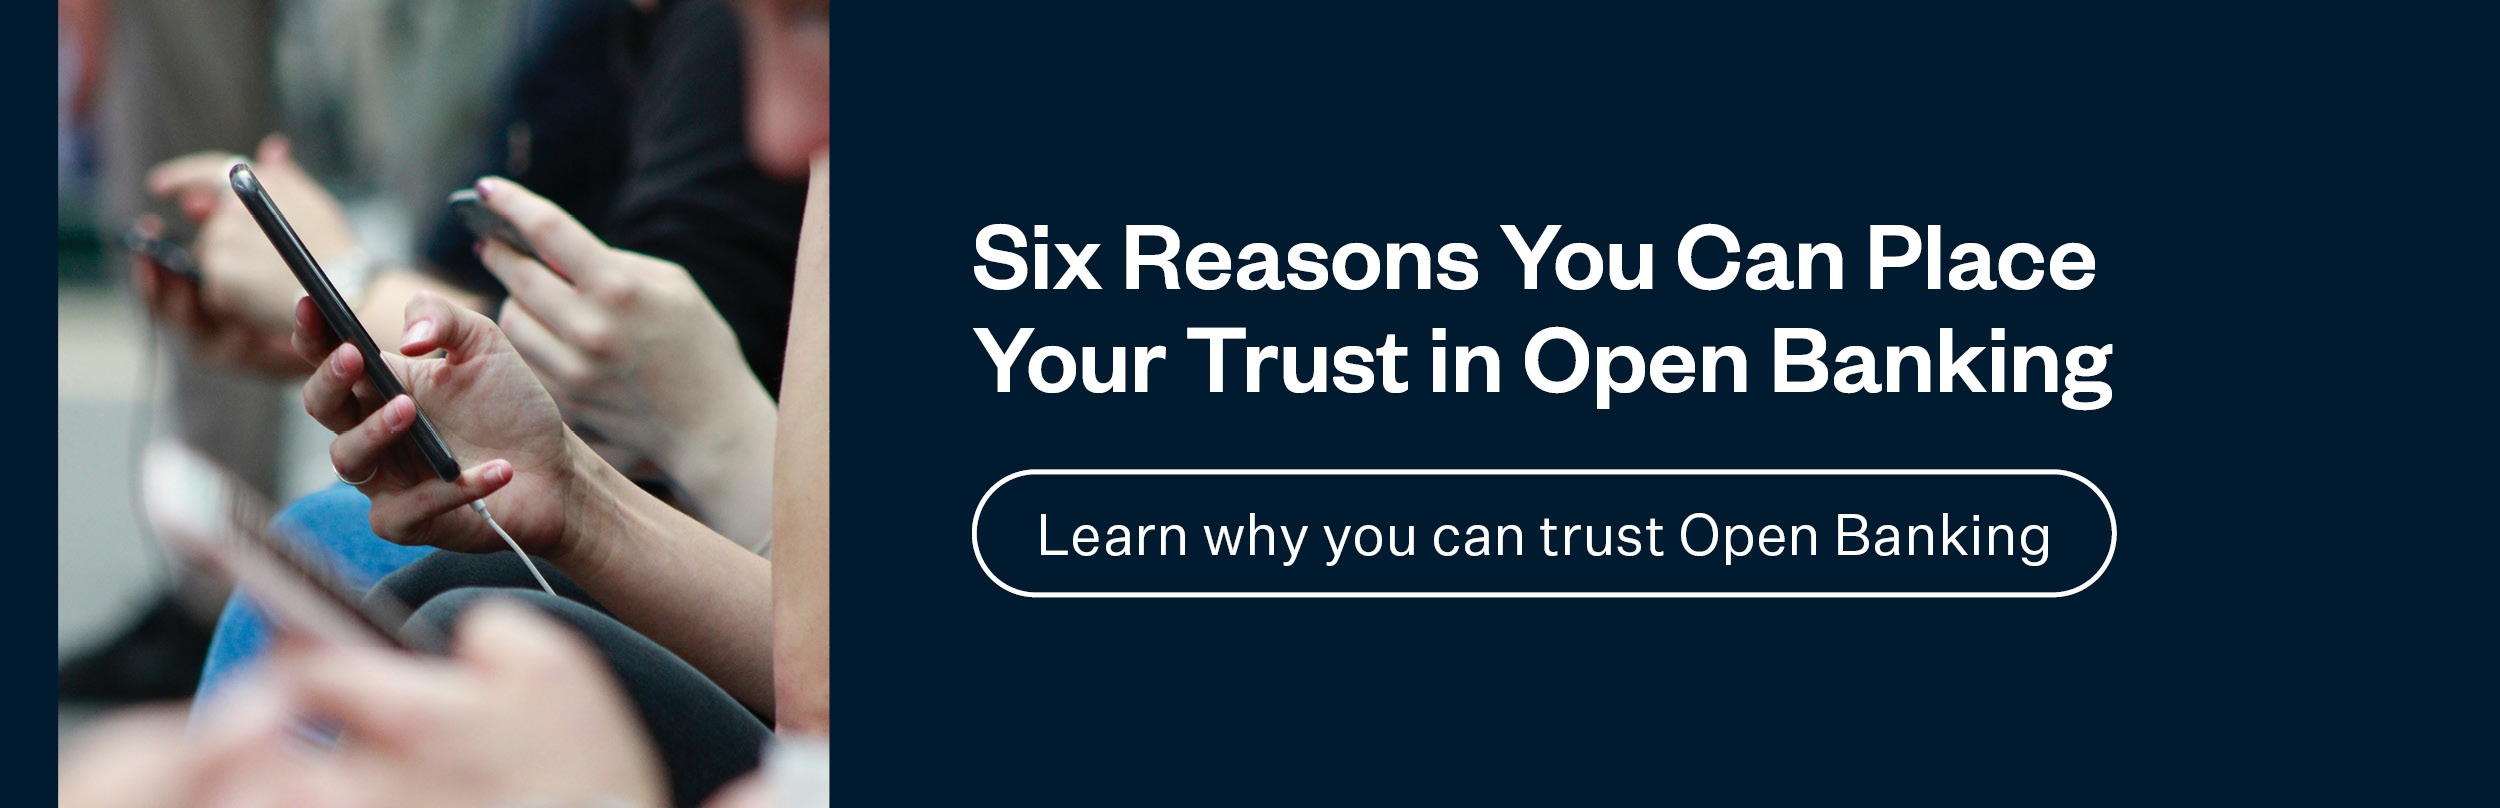 Learn why you can trust Open Banking